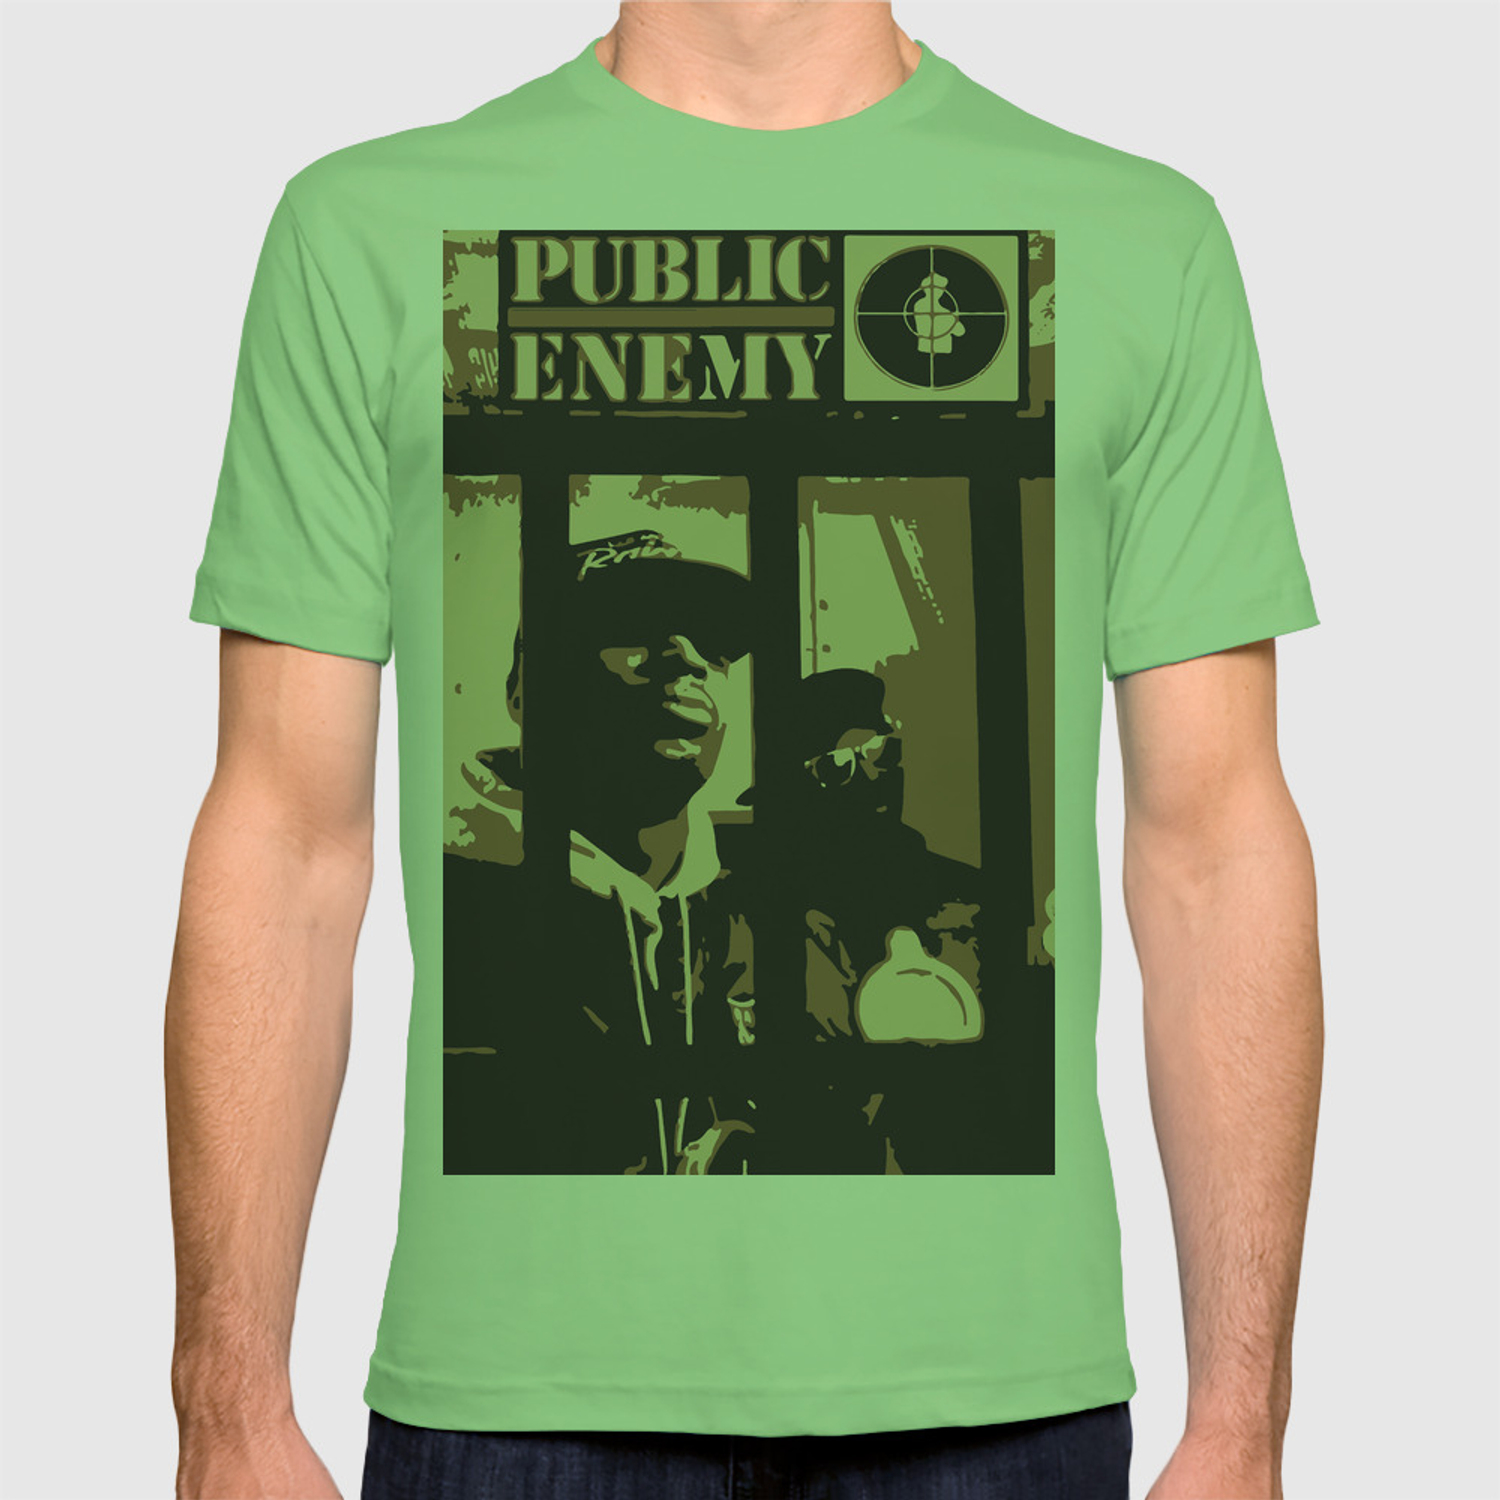 f3f91561 myfriendstoldmeaboutyou - Guide public enemy t shirt green->